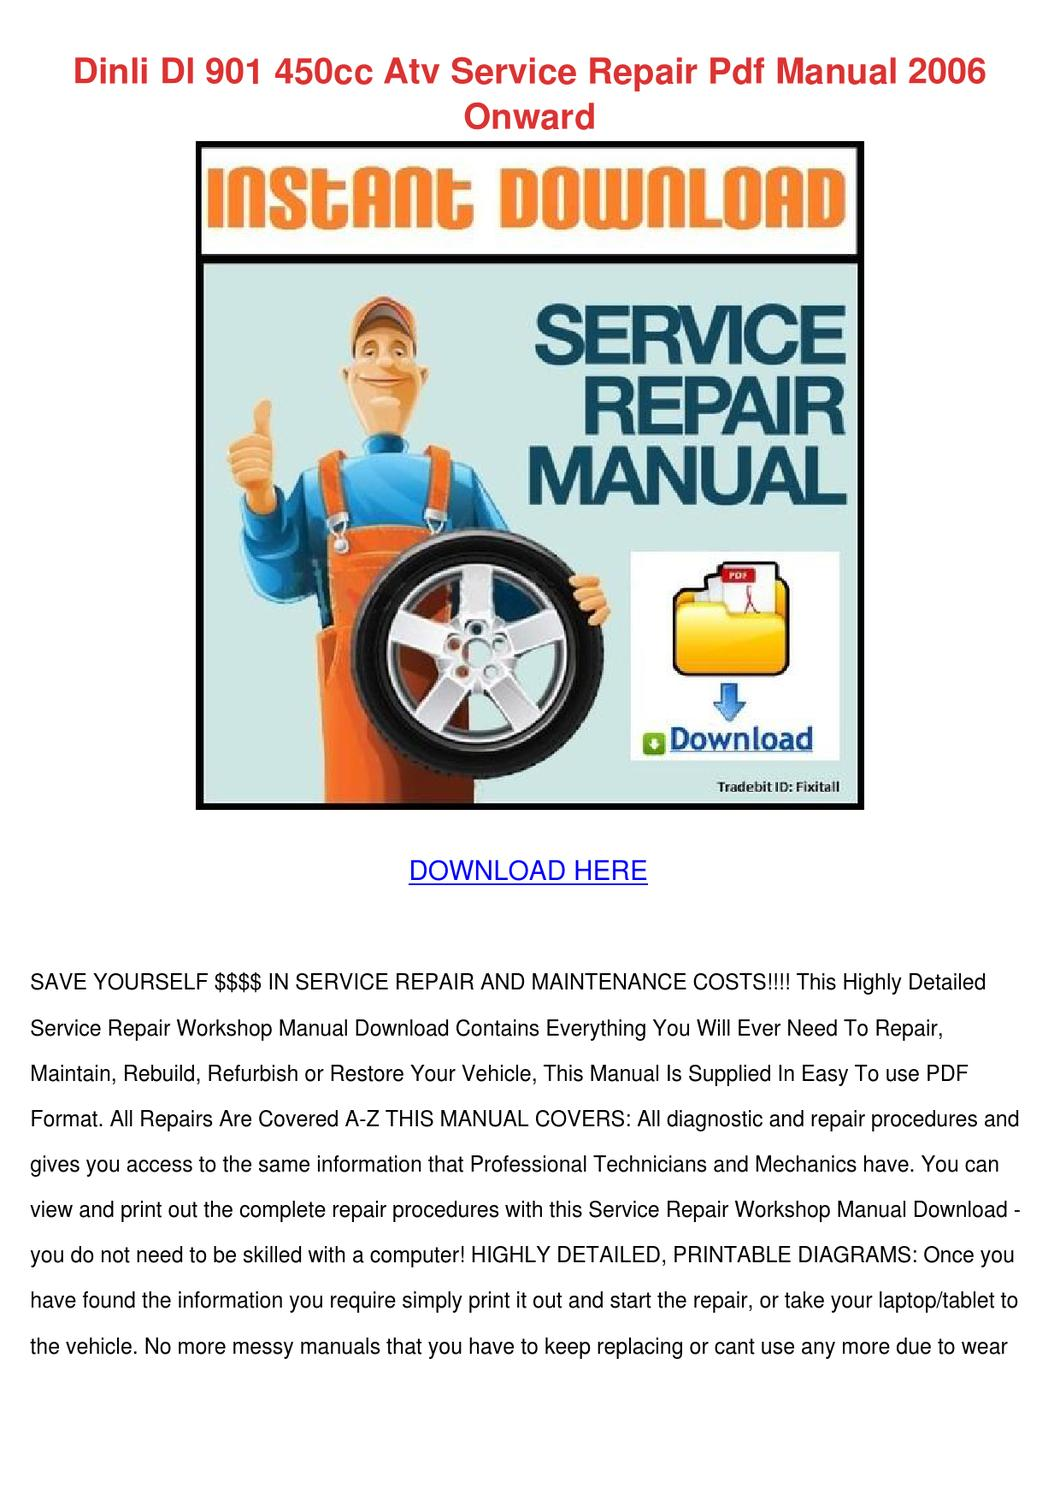 hight resolution of dinli dl603 helix 50cc 90cc chinese atv owners manual dinli dl 901 450cc quad service repair manual pdf nightwitchbodyart books library user to find out